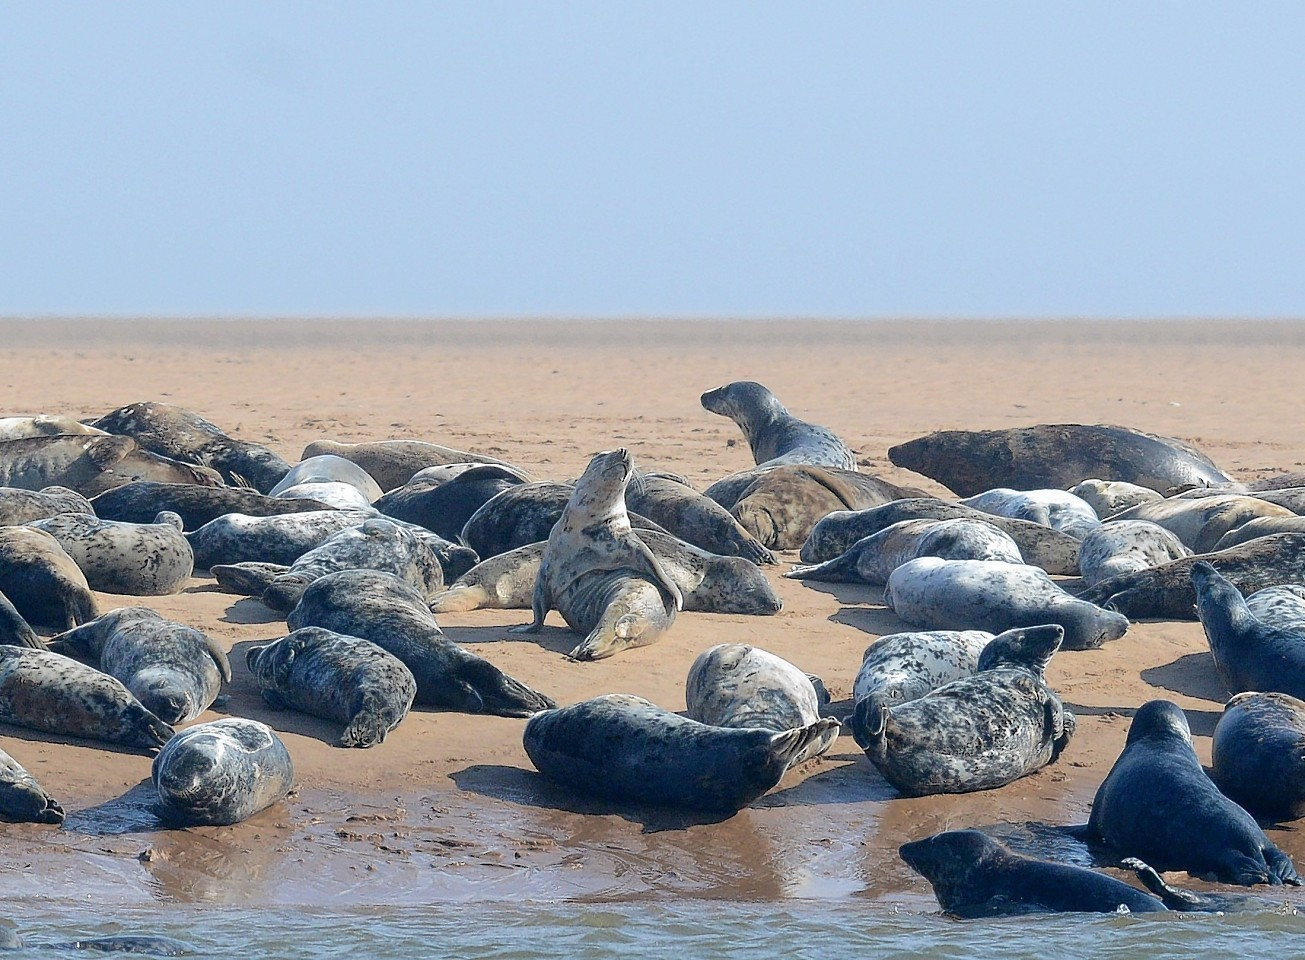 Seals' hearing could be damaged by the construction work